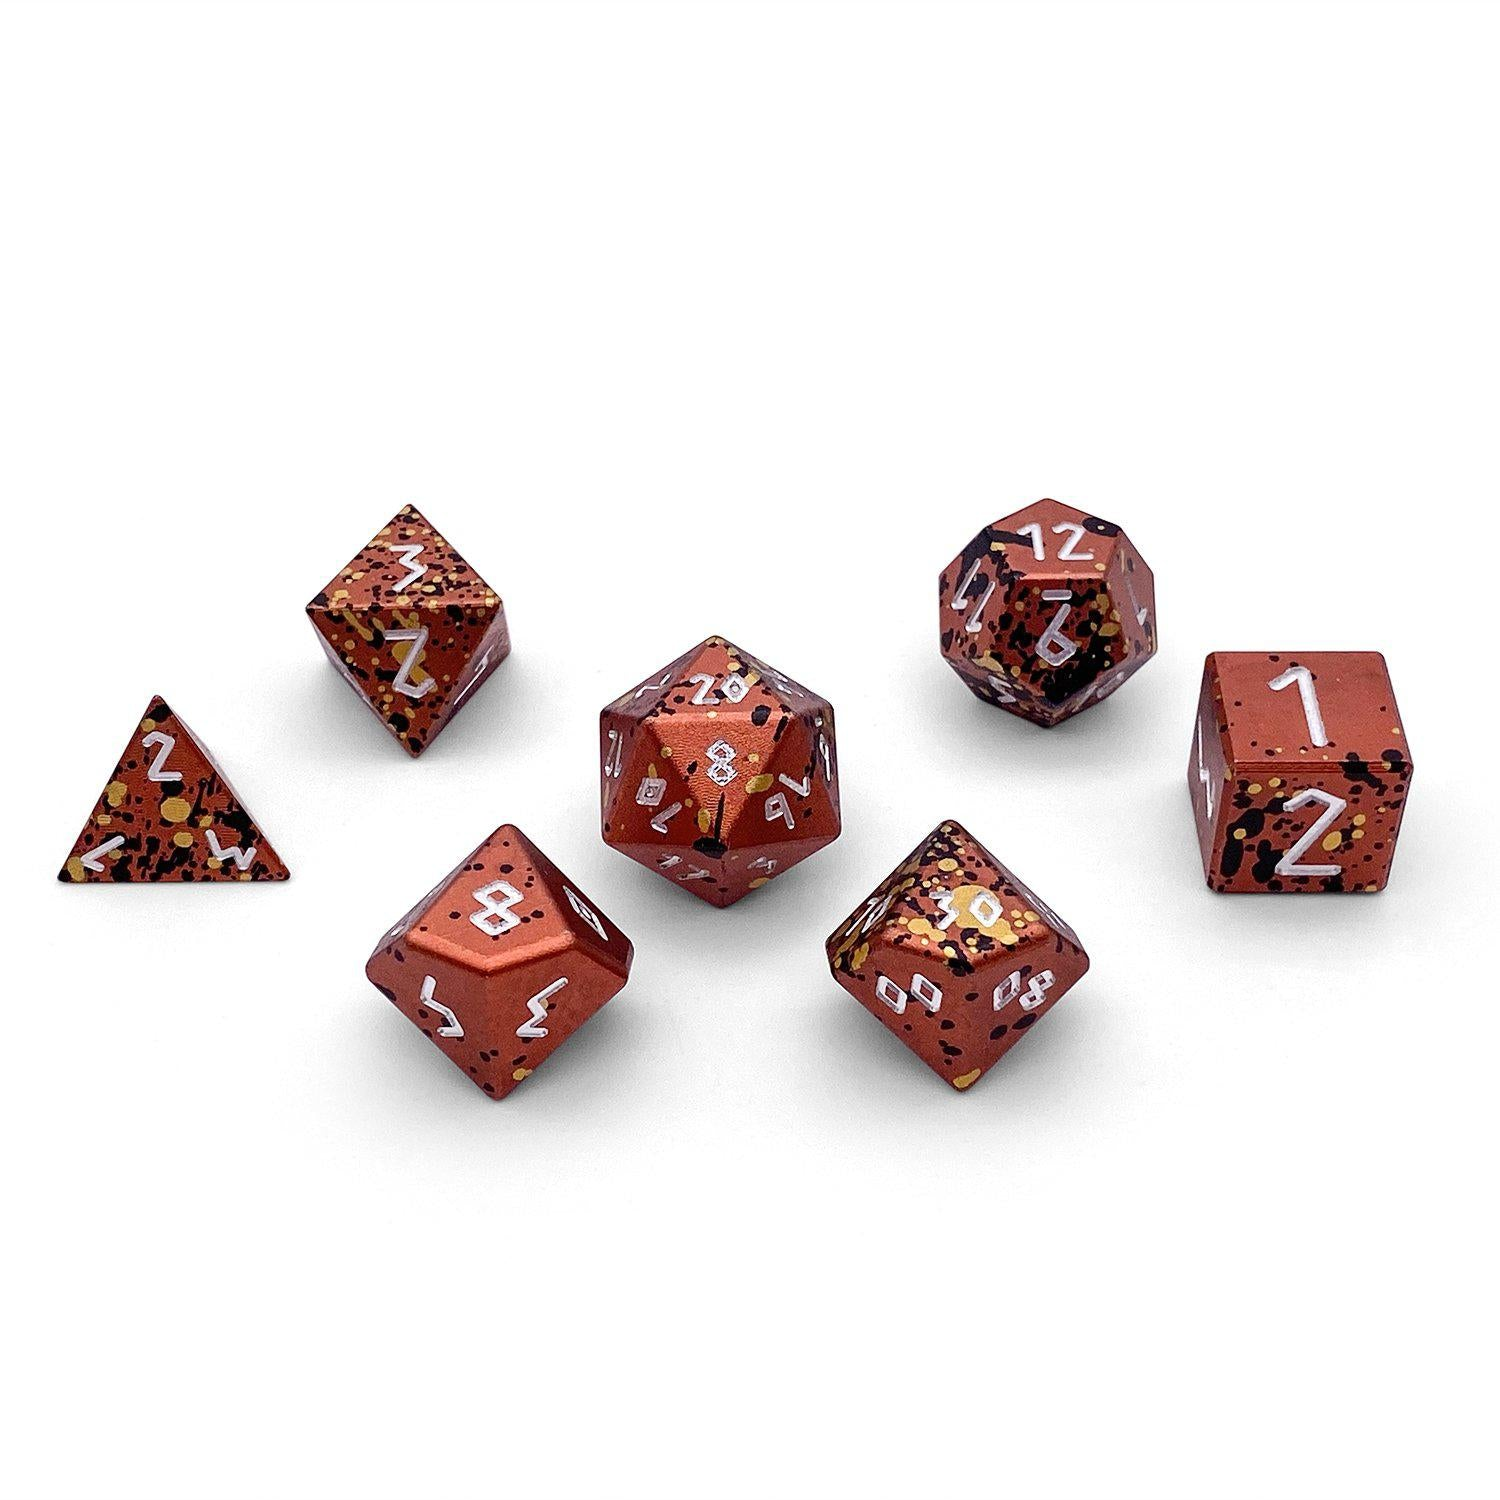 Single Wondrous Dice® D20 in Fire Elemental by Norse Foundry 6063 Aircraft Grade Aluminum